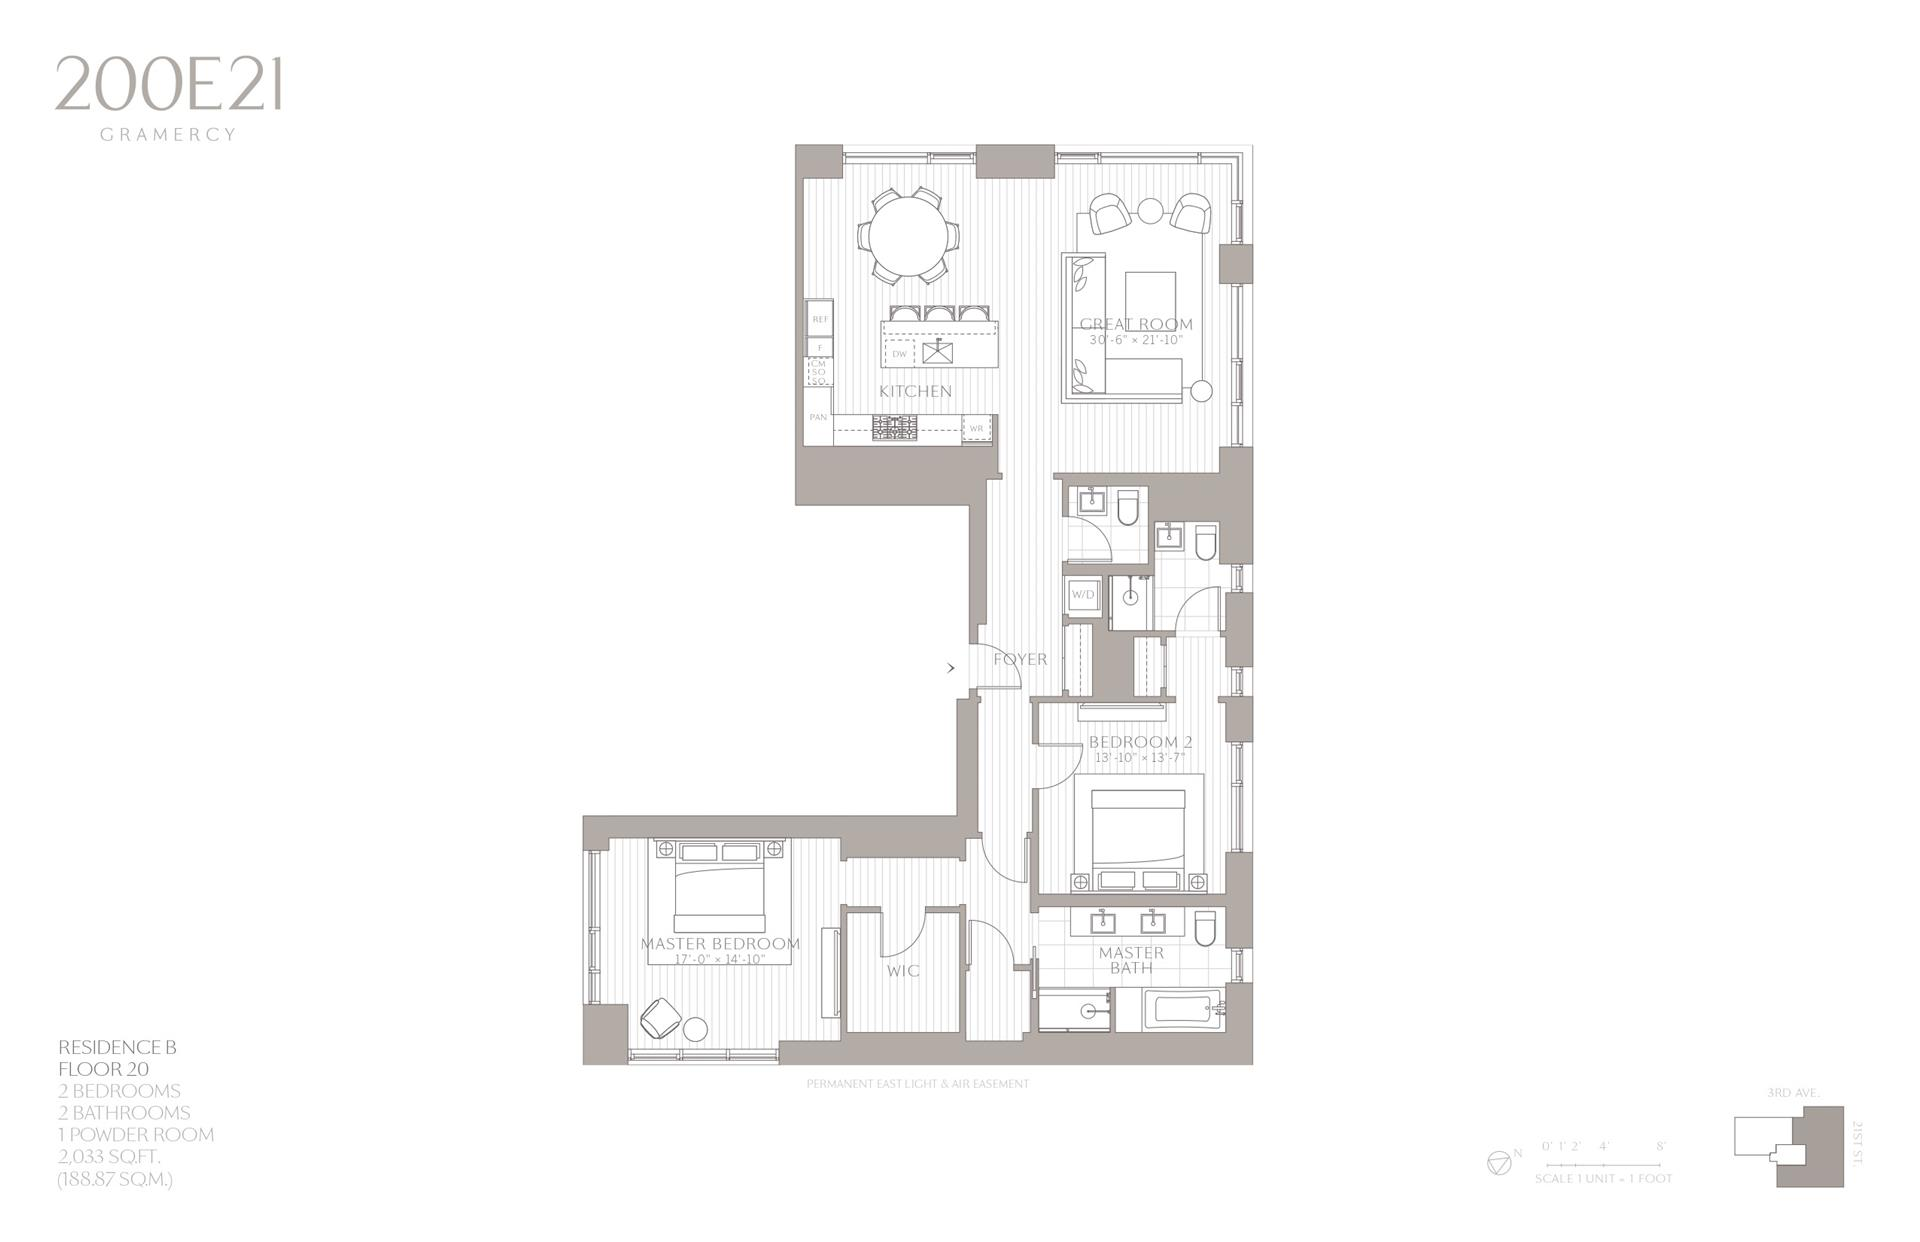 Floor plan of 200 East 21st St, 20B - Gramercy - Union Square, New York